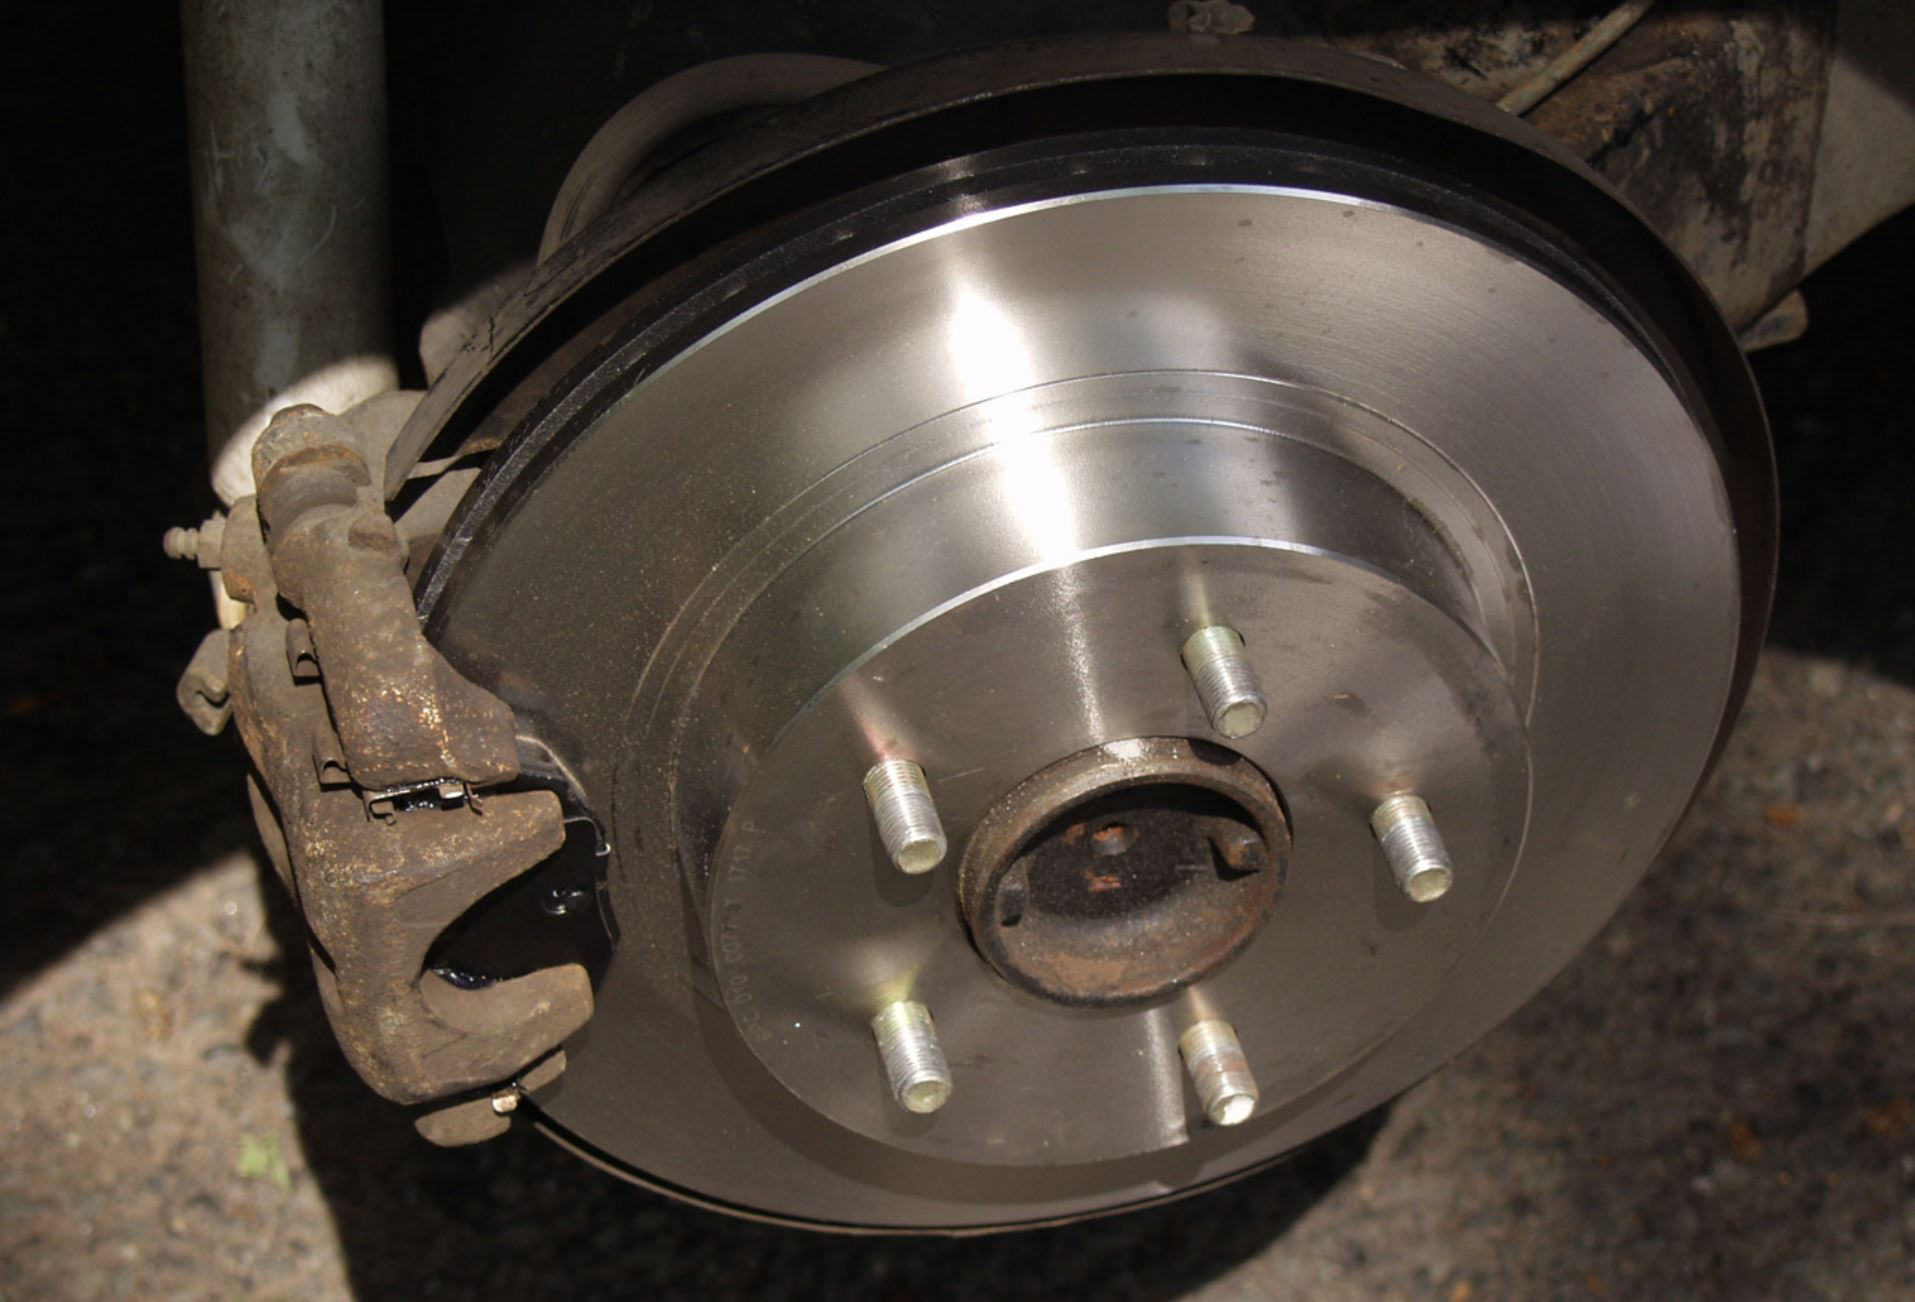 hight resolution of there are no specific brake issues with the z31 but make sure they work and they have life left in the pads when test driving the vehicle make sure you